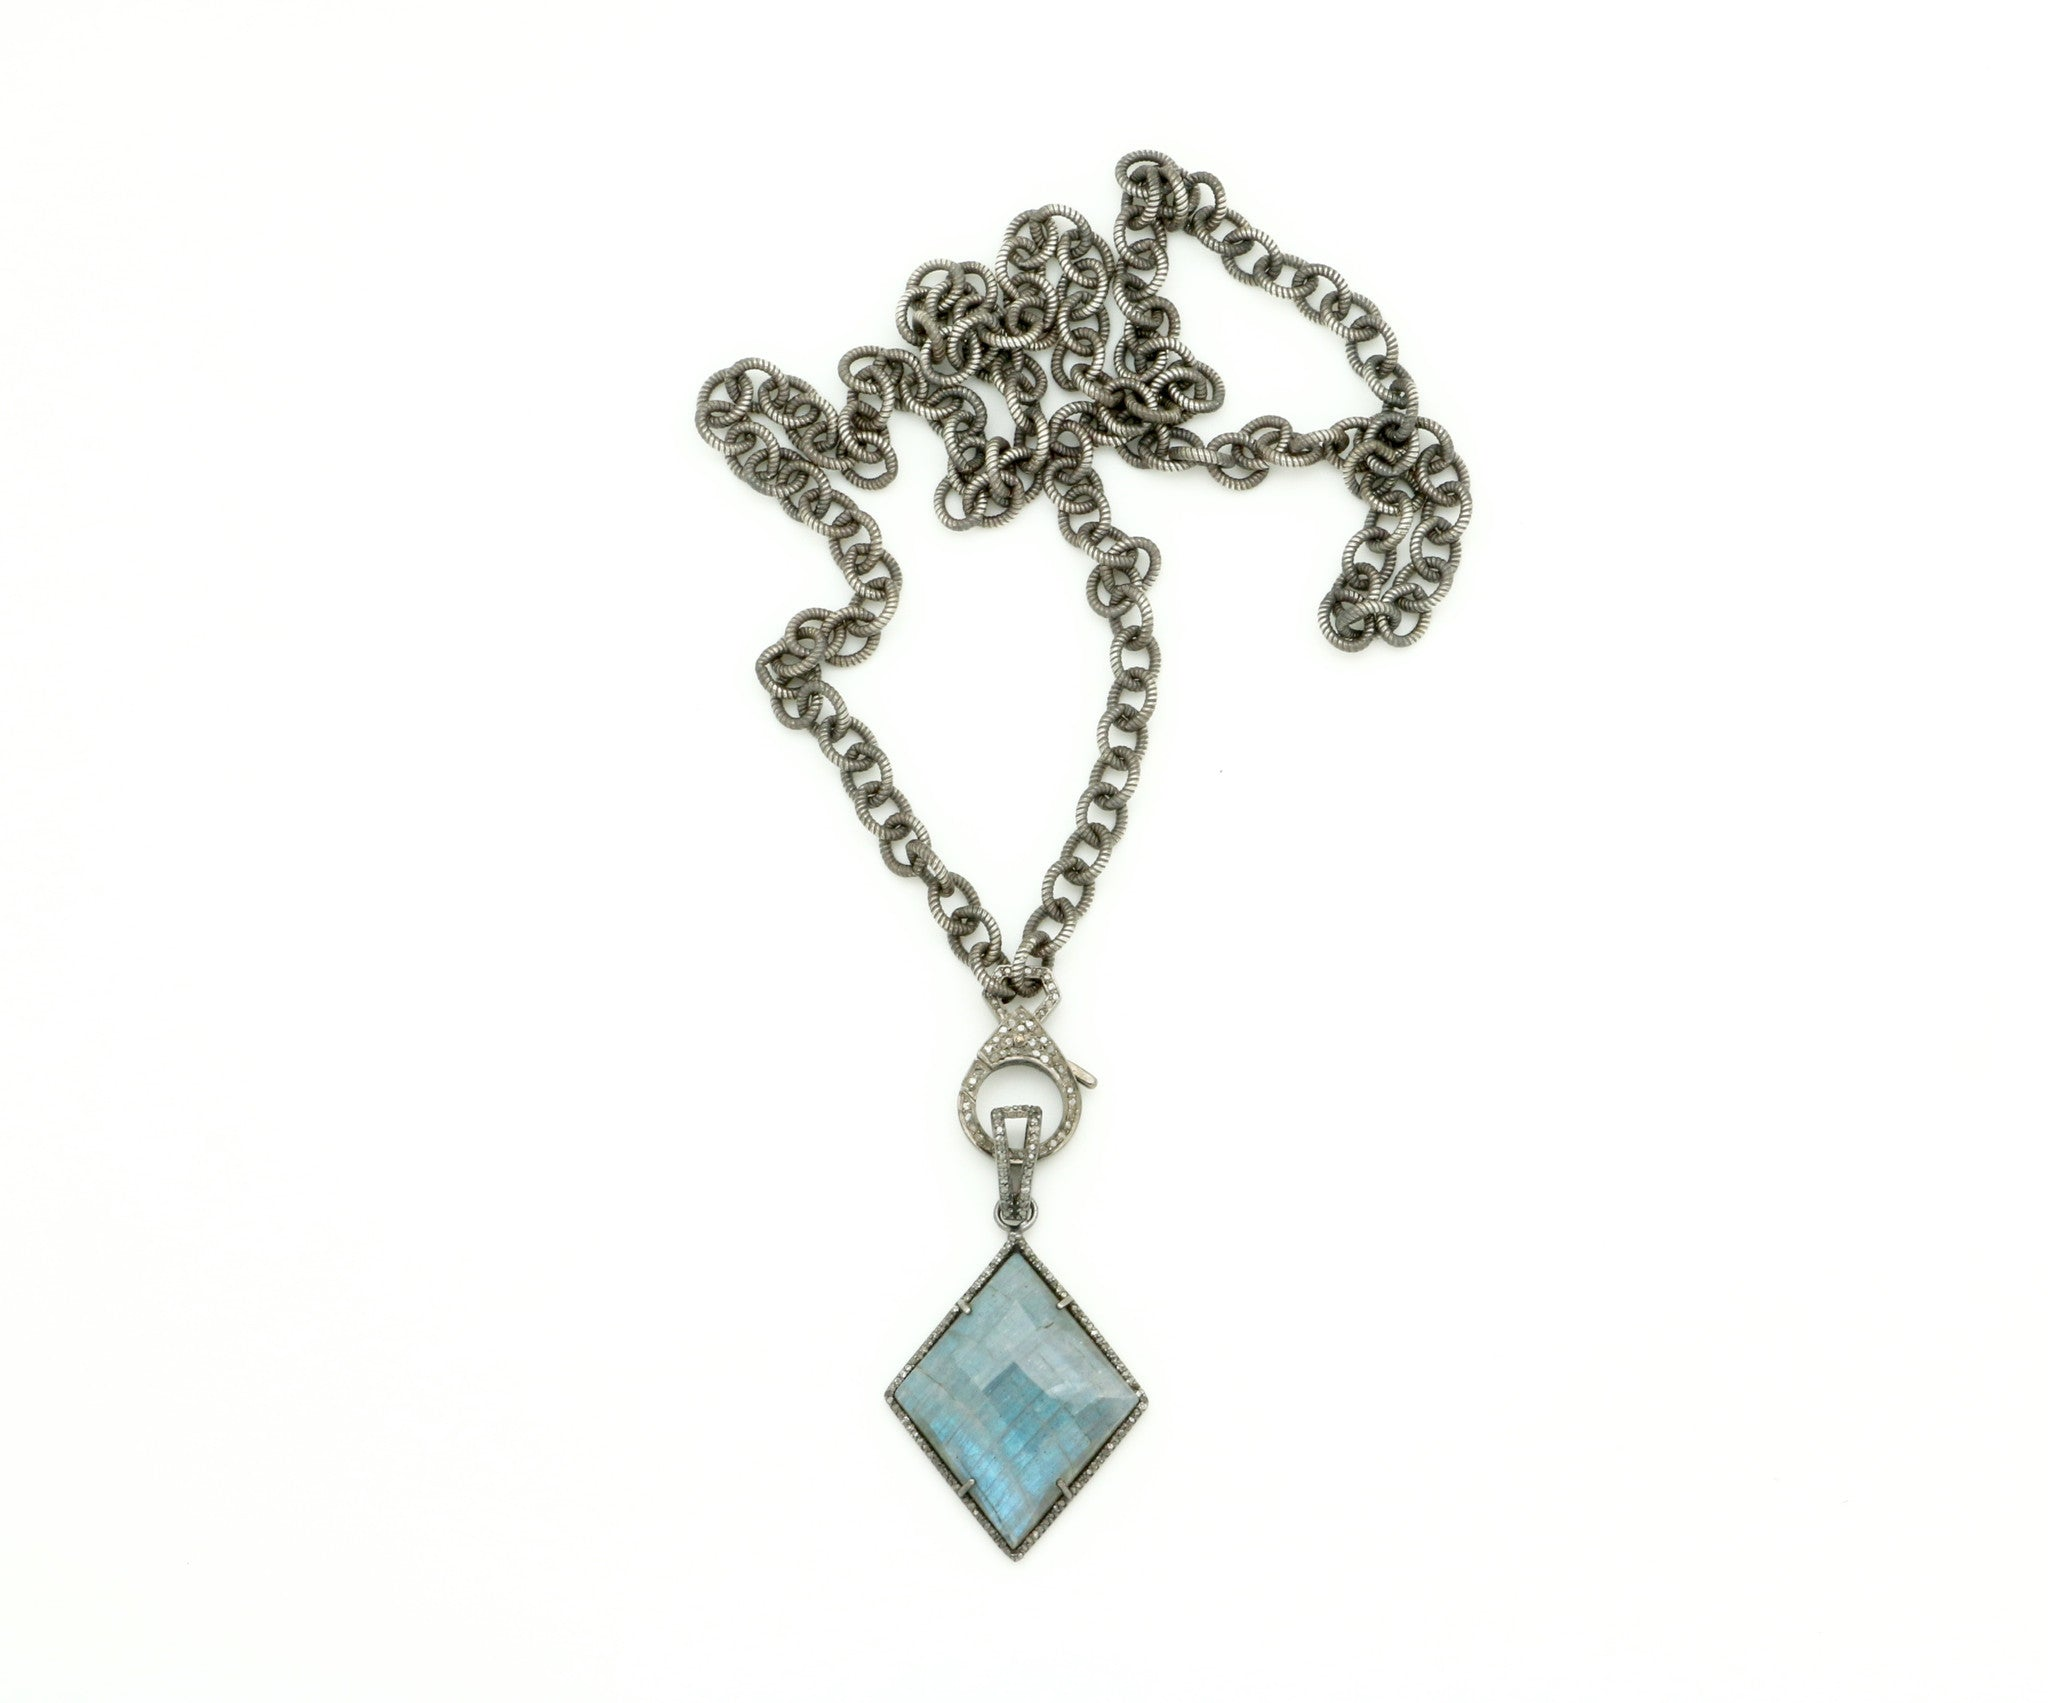 OXIDIZED STERLING SILVER CHAIN WITH DIAMOND CLASP